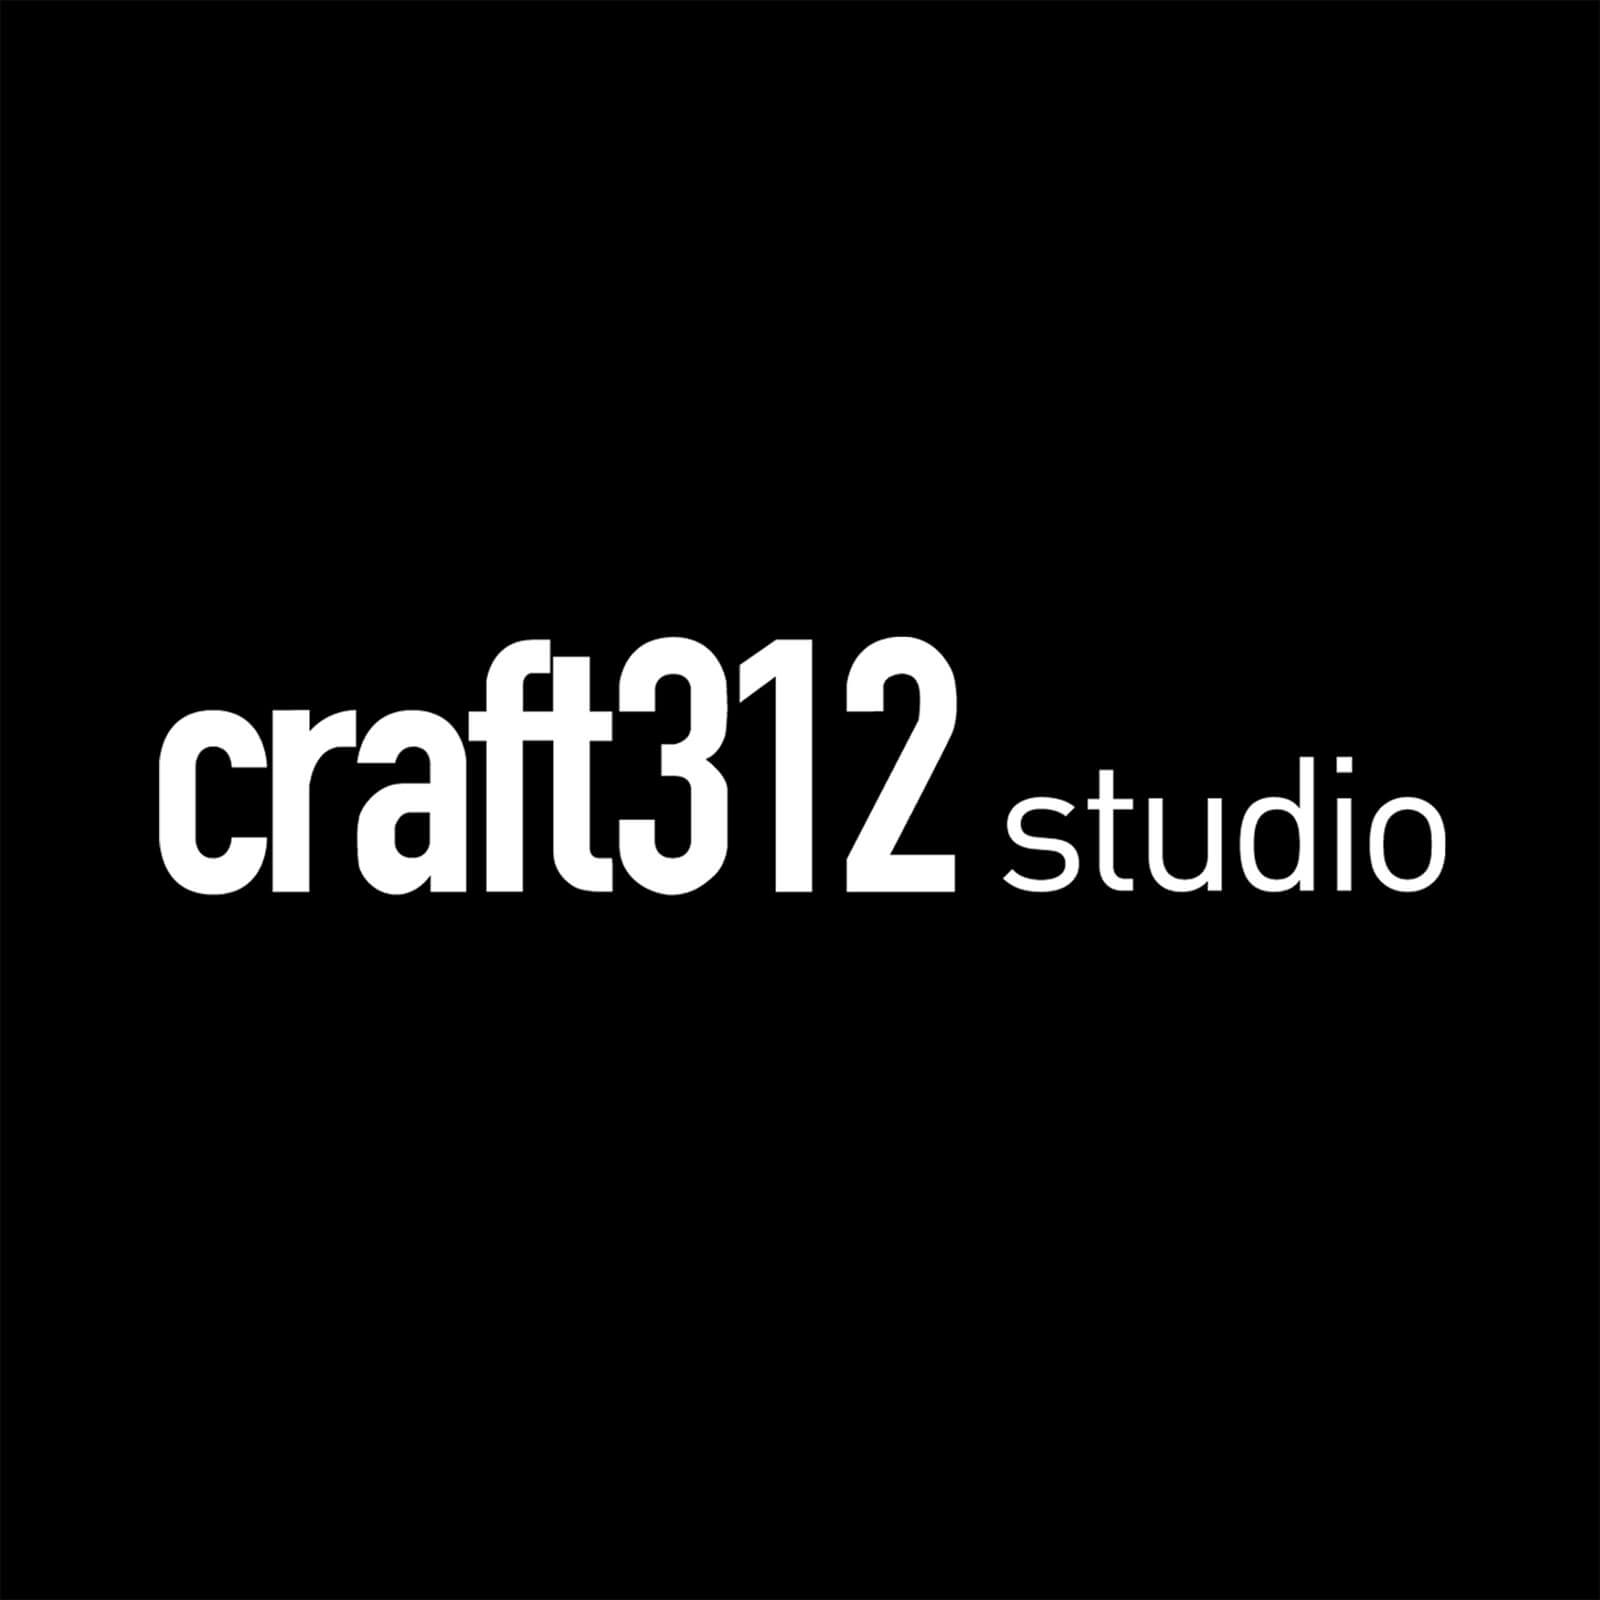 Craft312 Studio